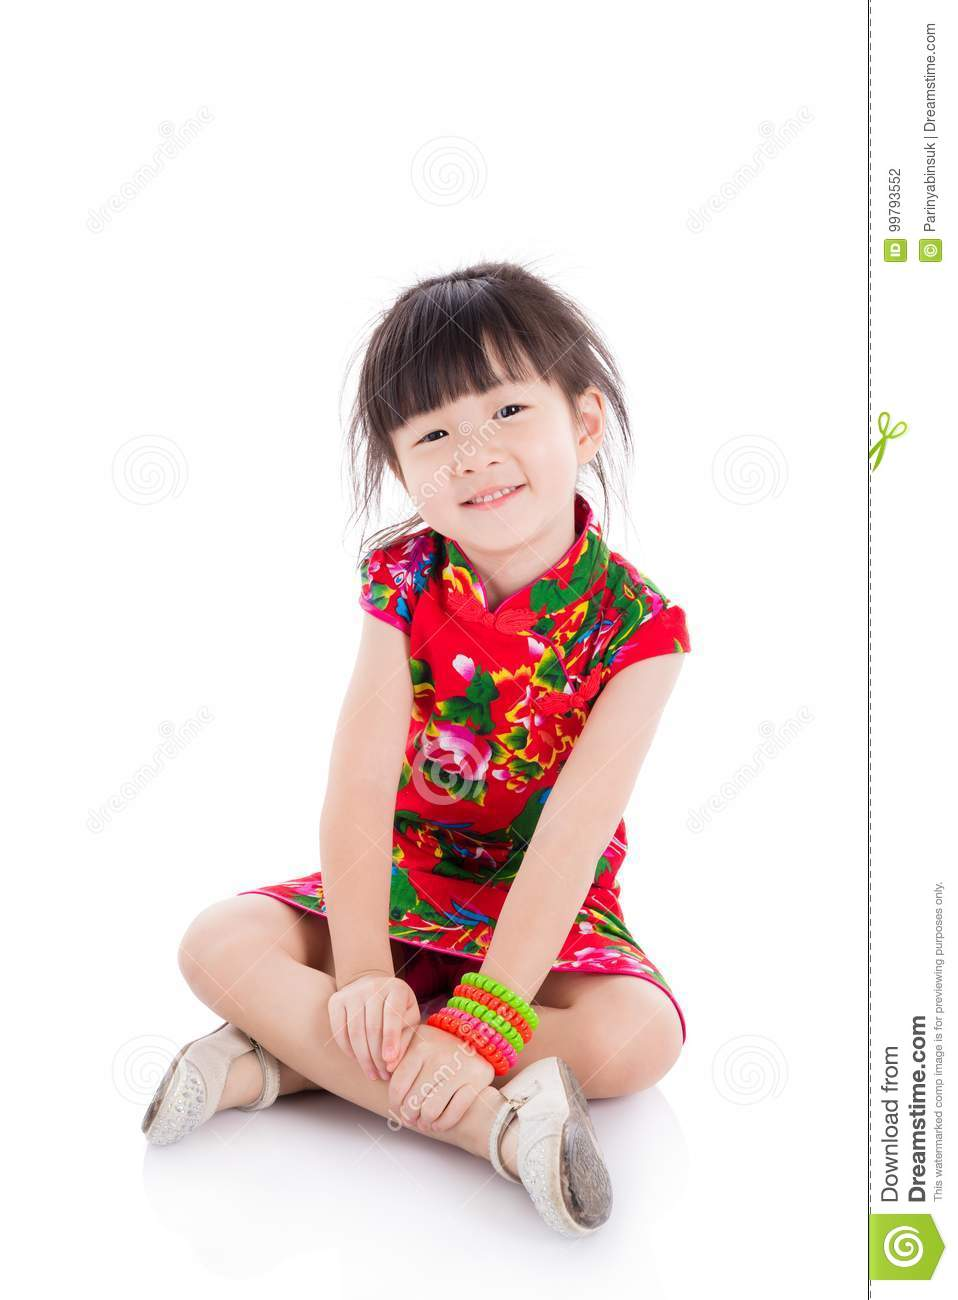 456ecbafd51a Little asian girl wearing red chinese traditional dress sitting on the floor